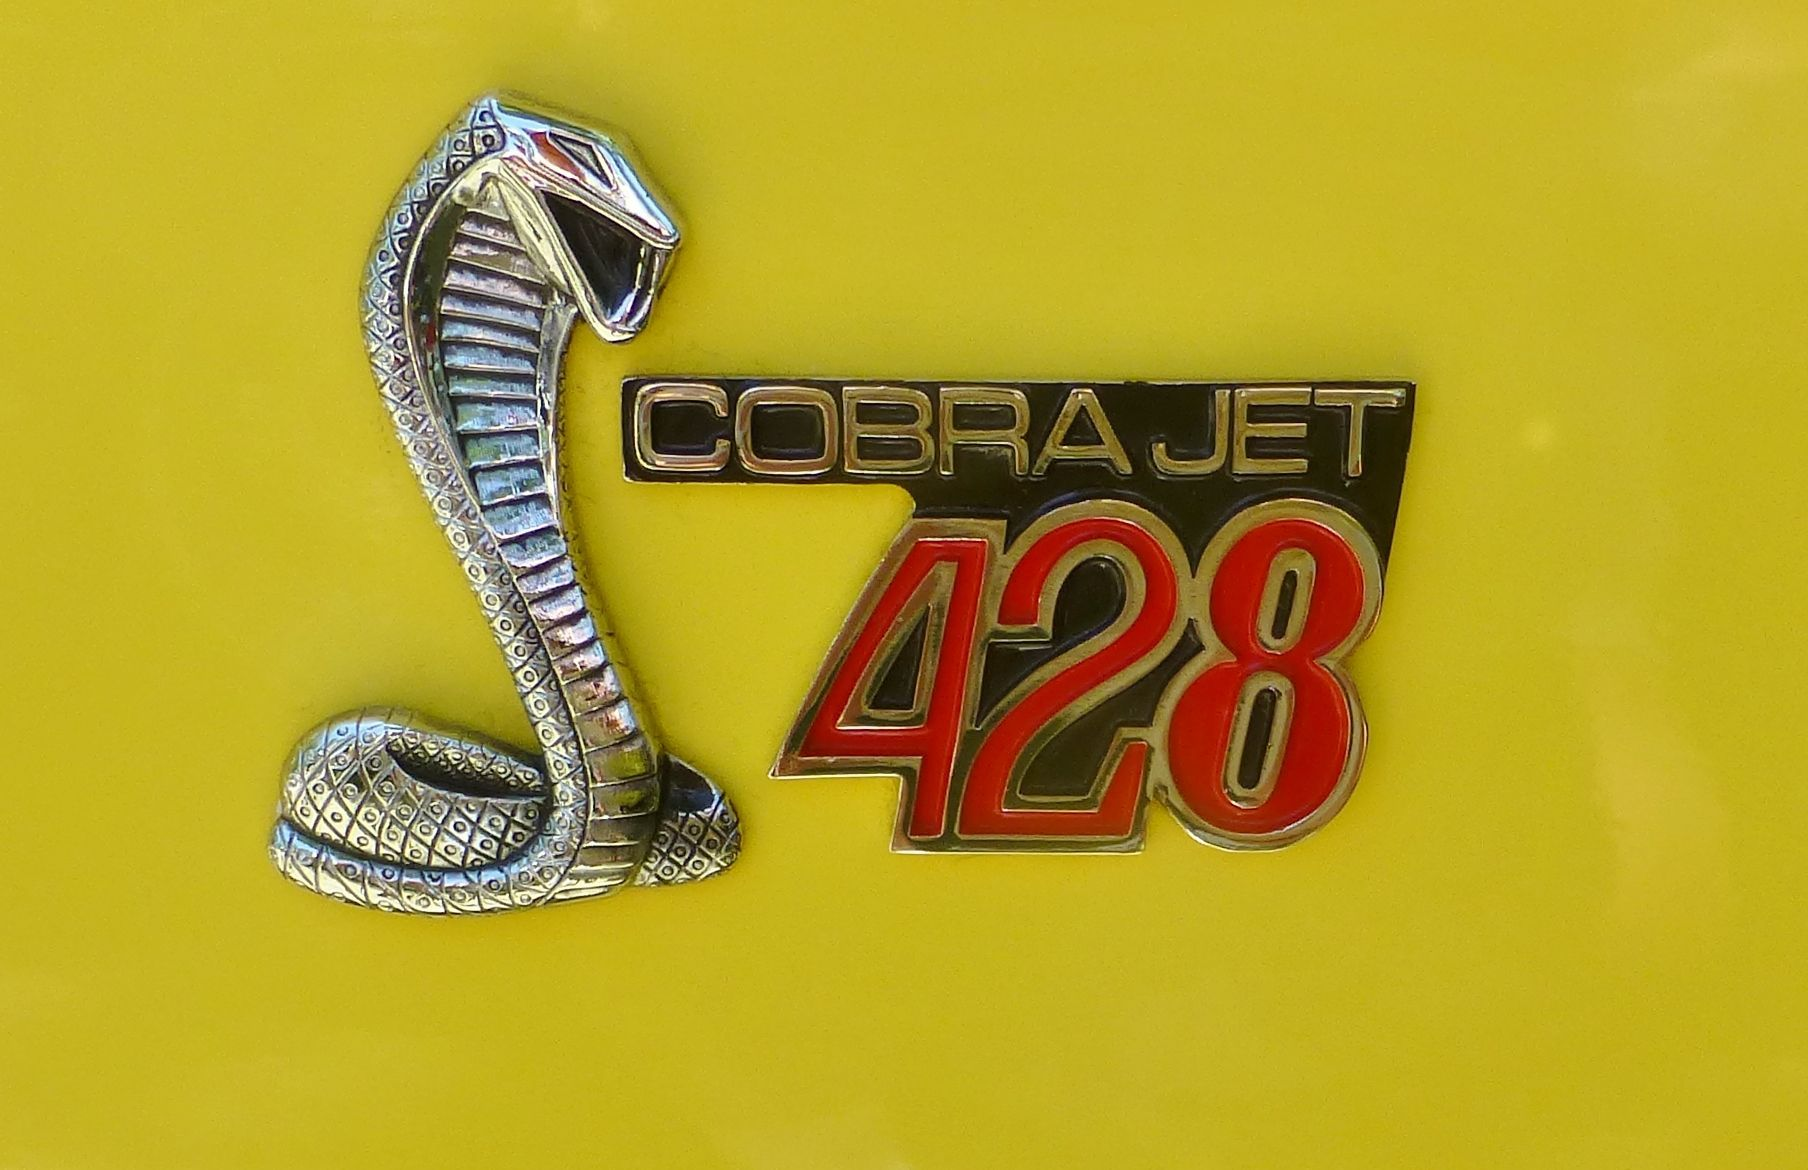 1968 Ford Cobra Jet 428 badge. Photography by David E. Nelson, 2017 ...